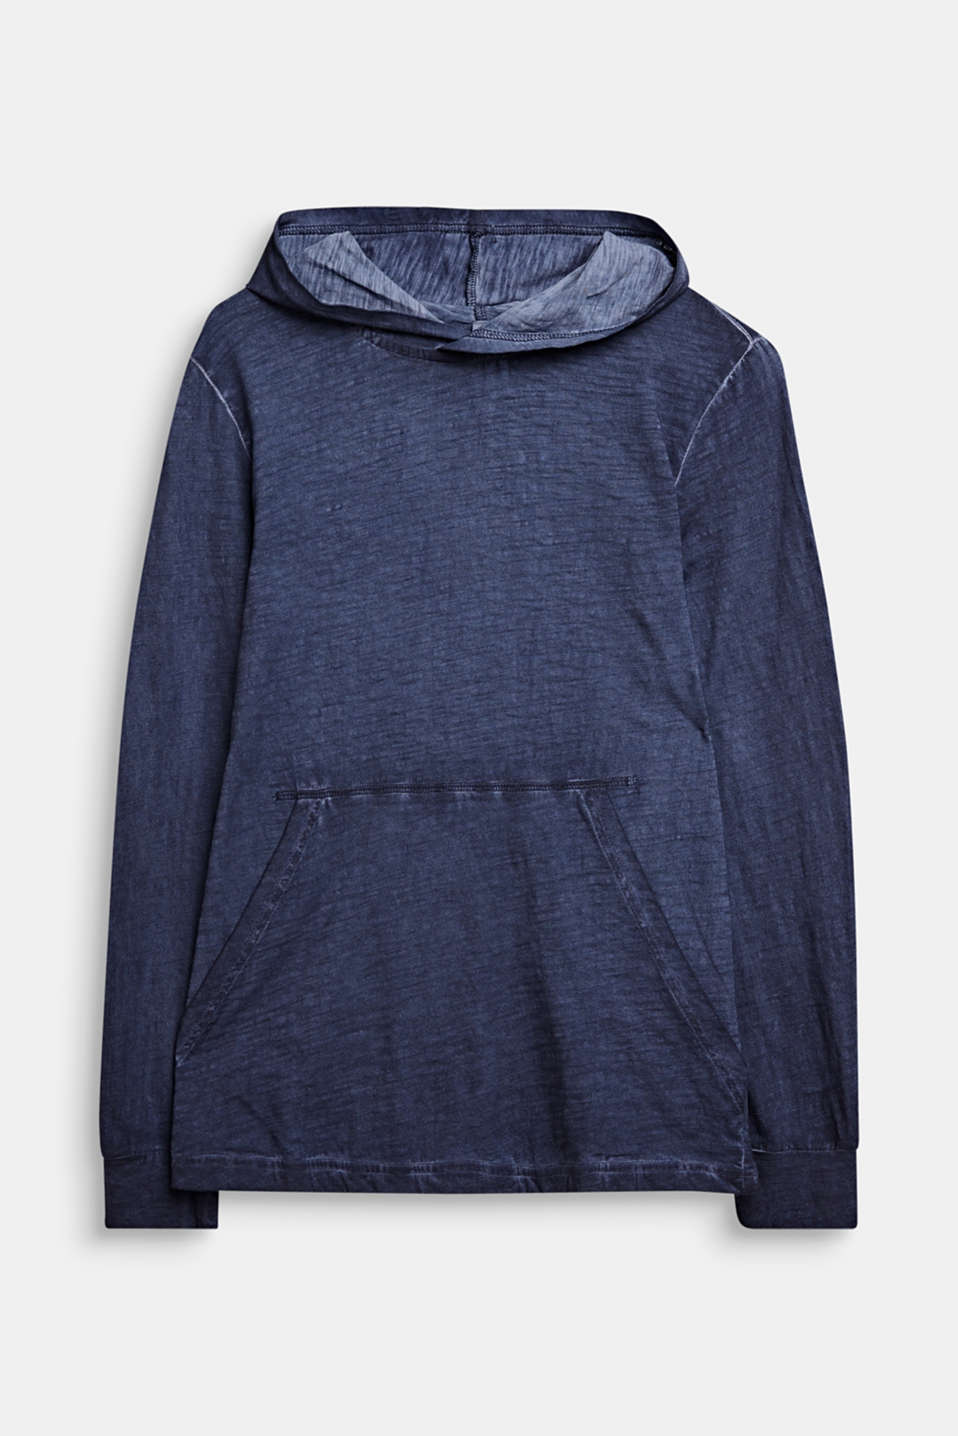 Hooded long sleeve top with a casual dye effect